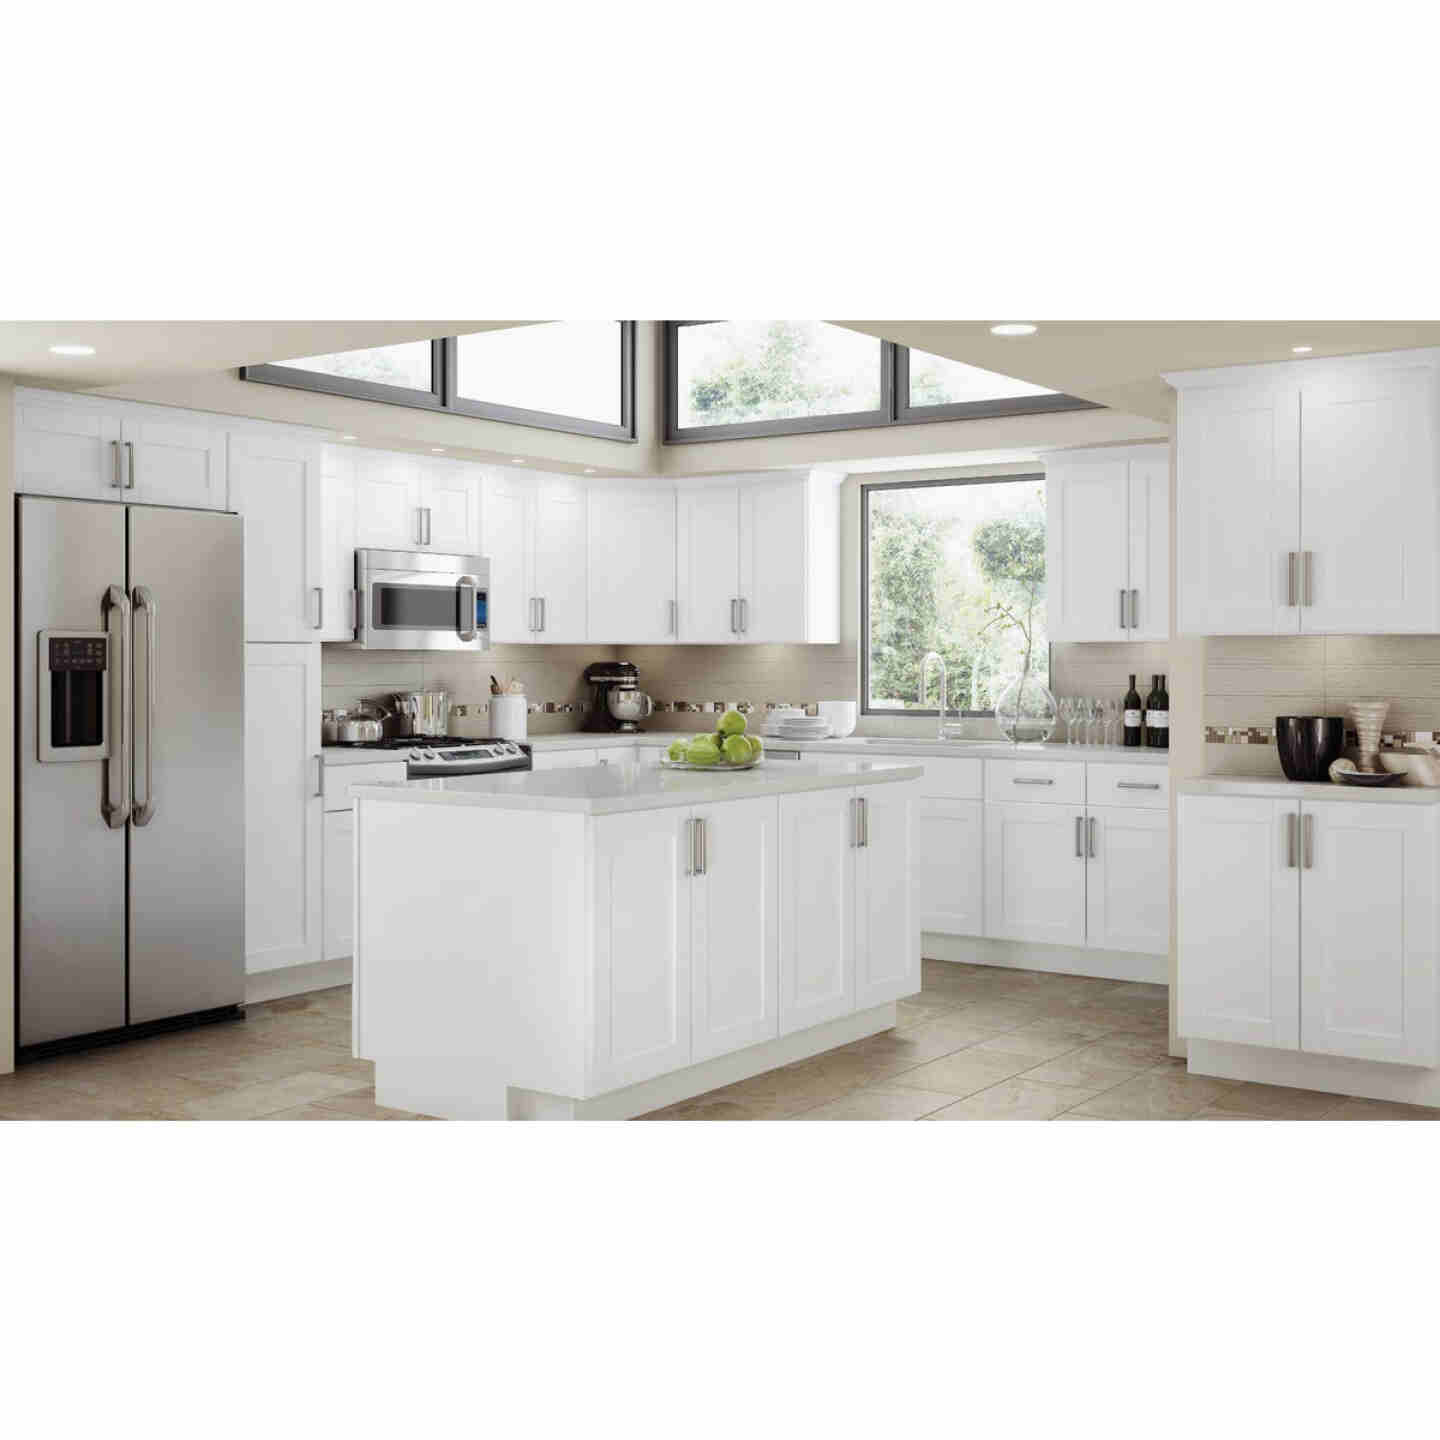 Continental Cabinets Andover Shaker 30 In. W x 15 In. H x 12 In. D White Thermofoil Bridge Wall Kitchen Cabinet Image 2